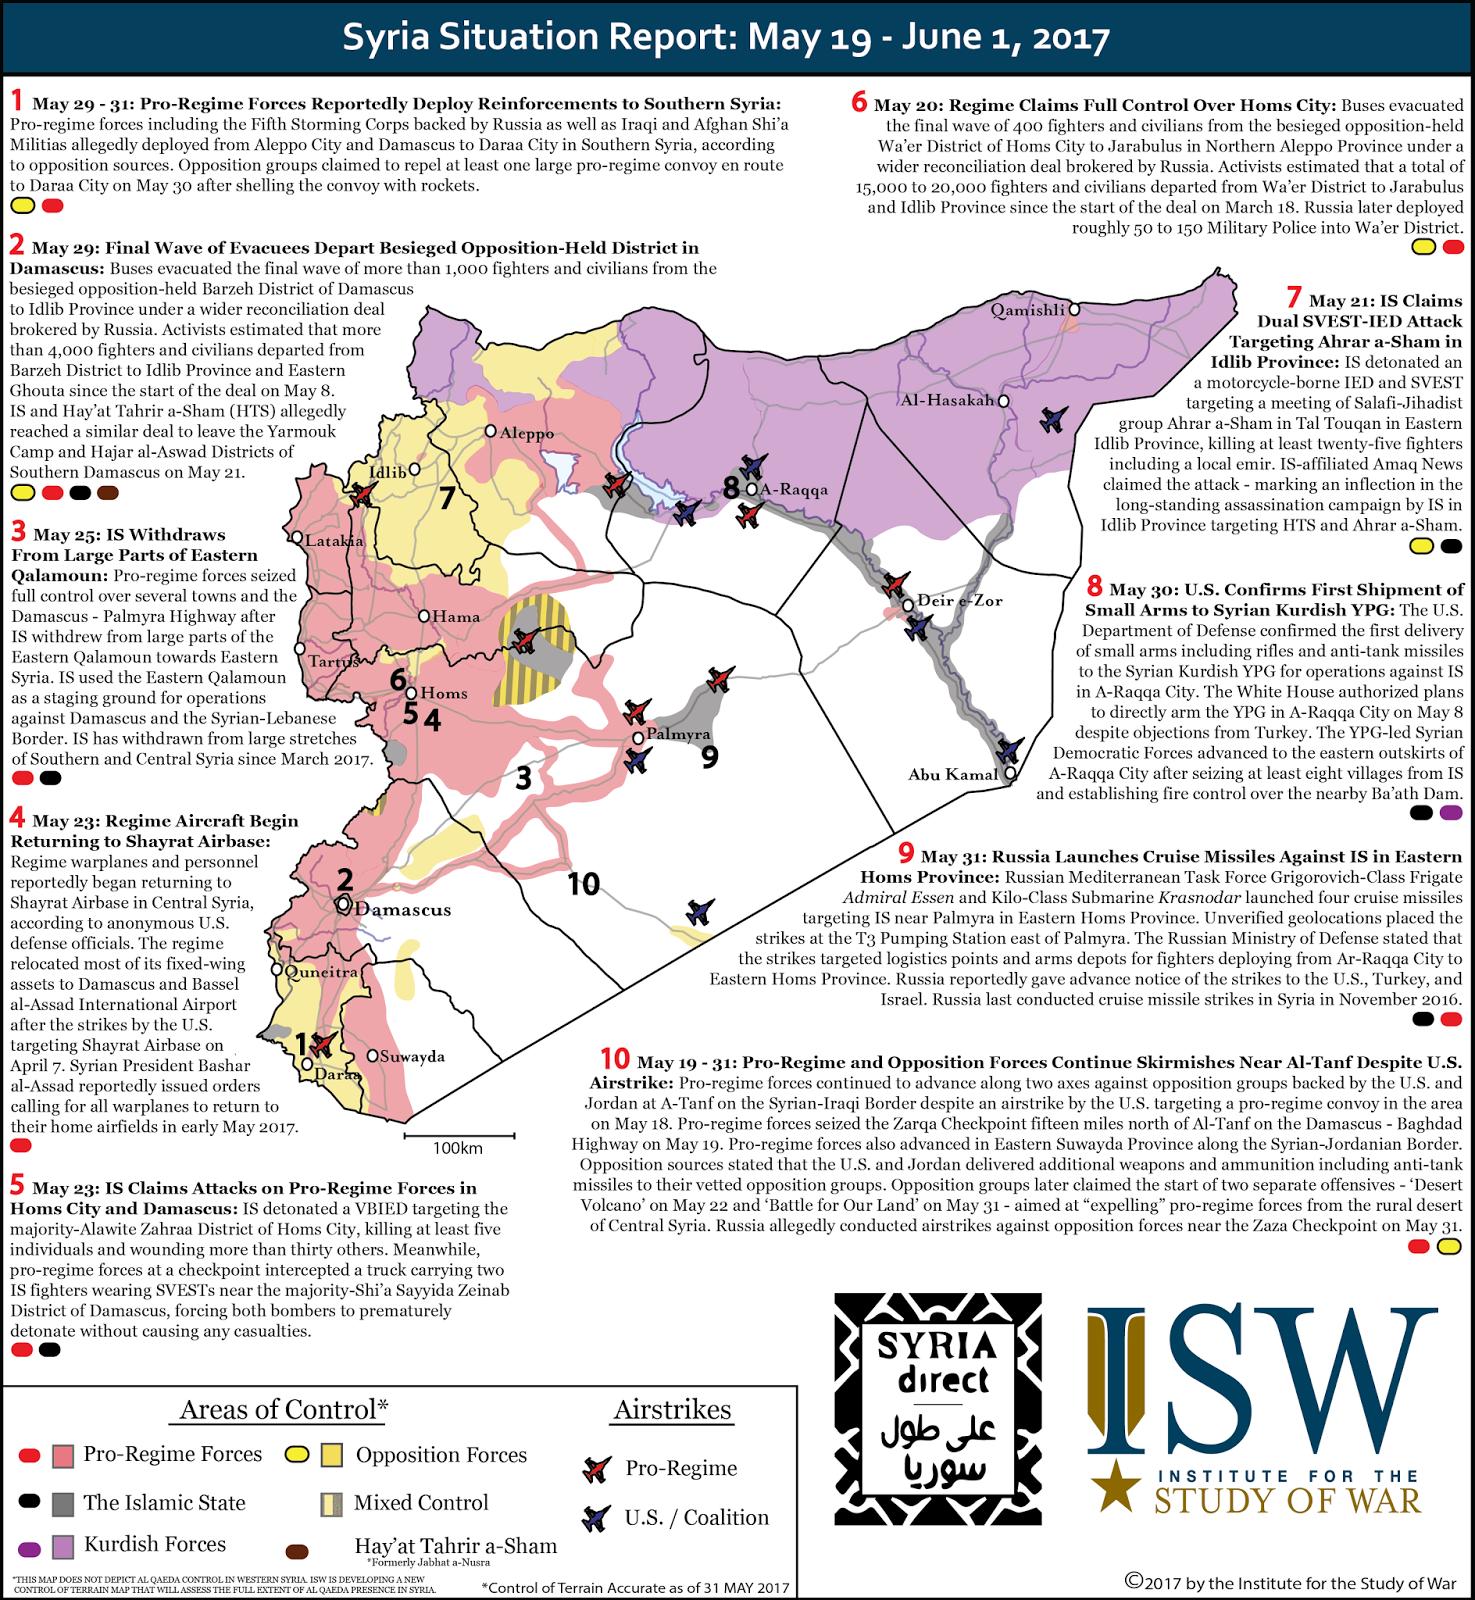 Syria Situation Report: May 19 - June 1, 2017